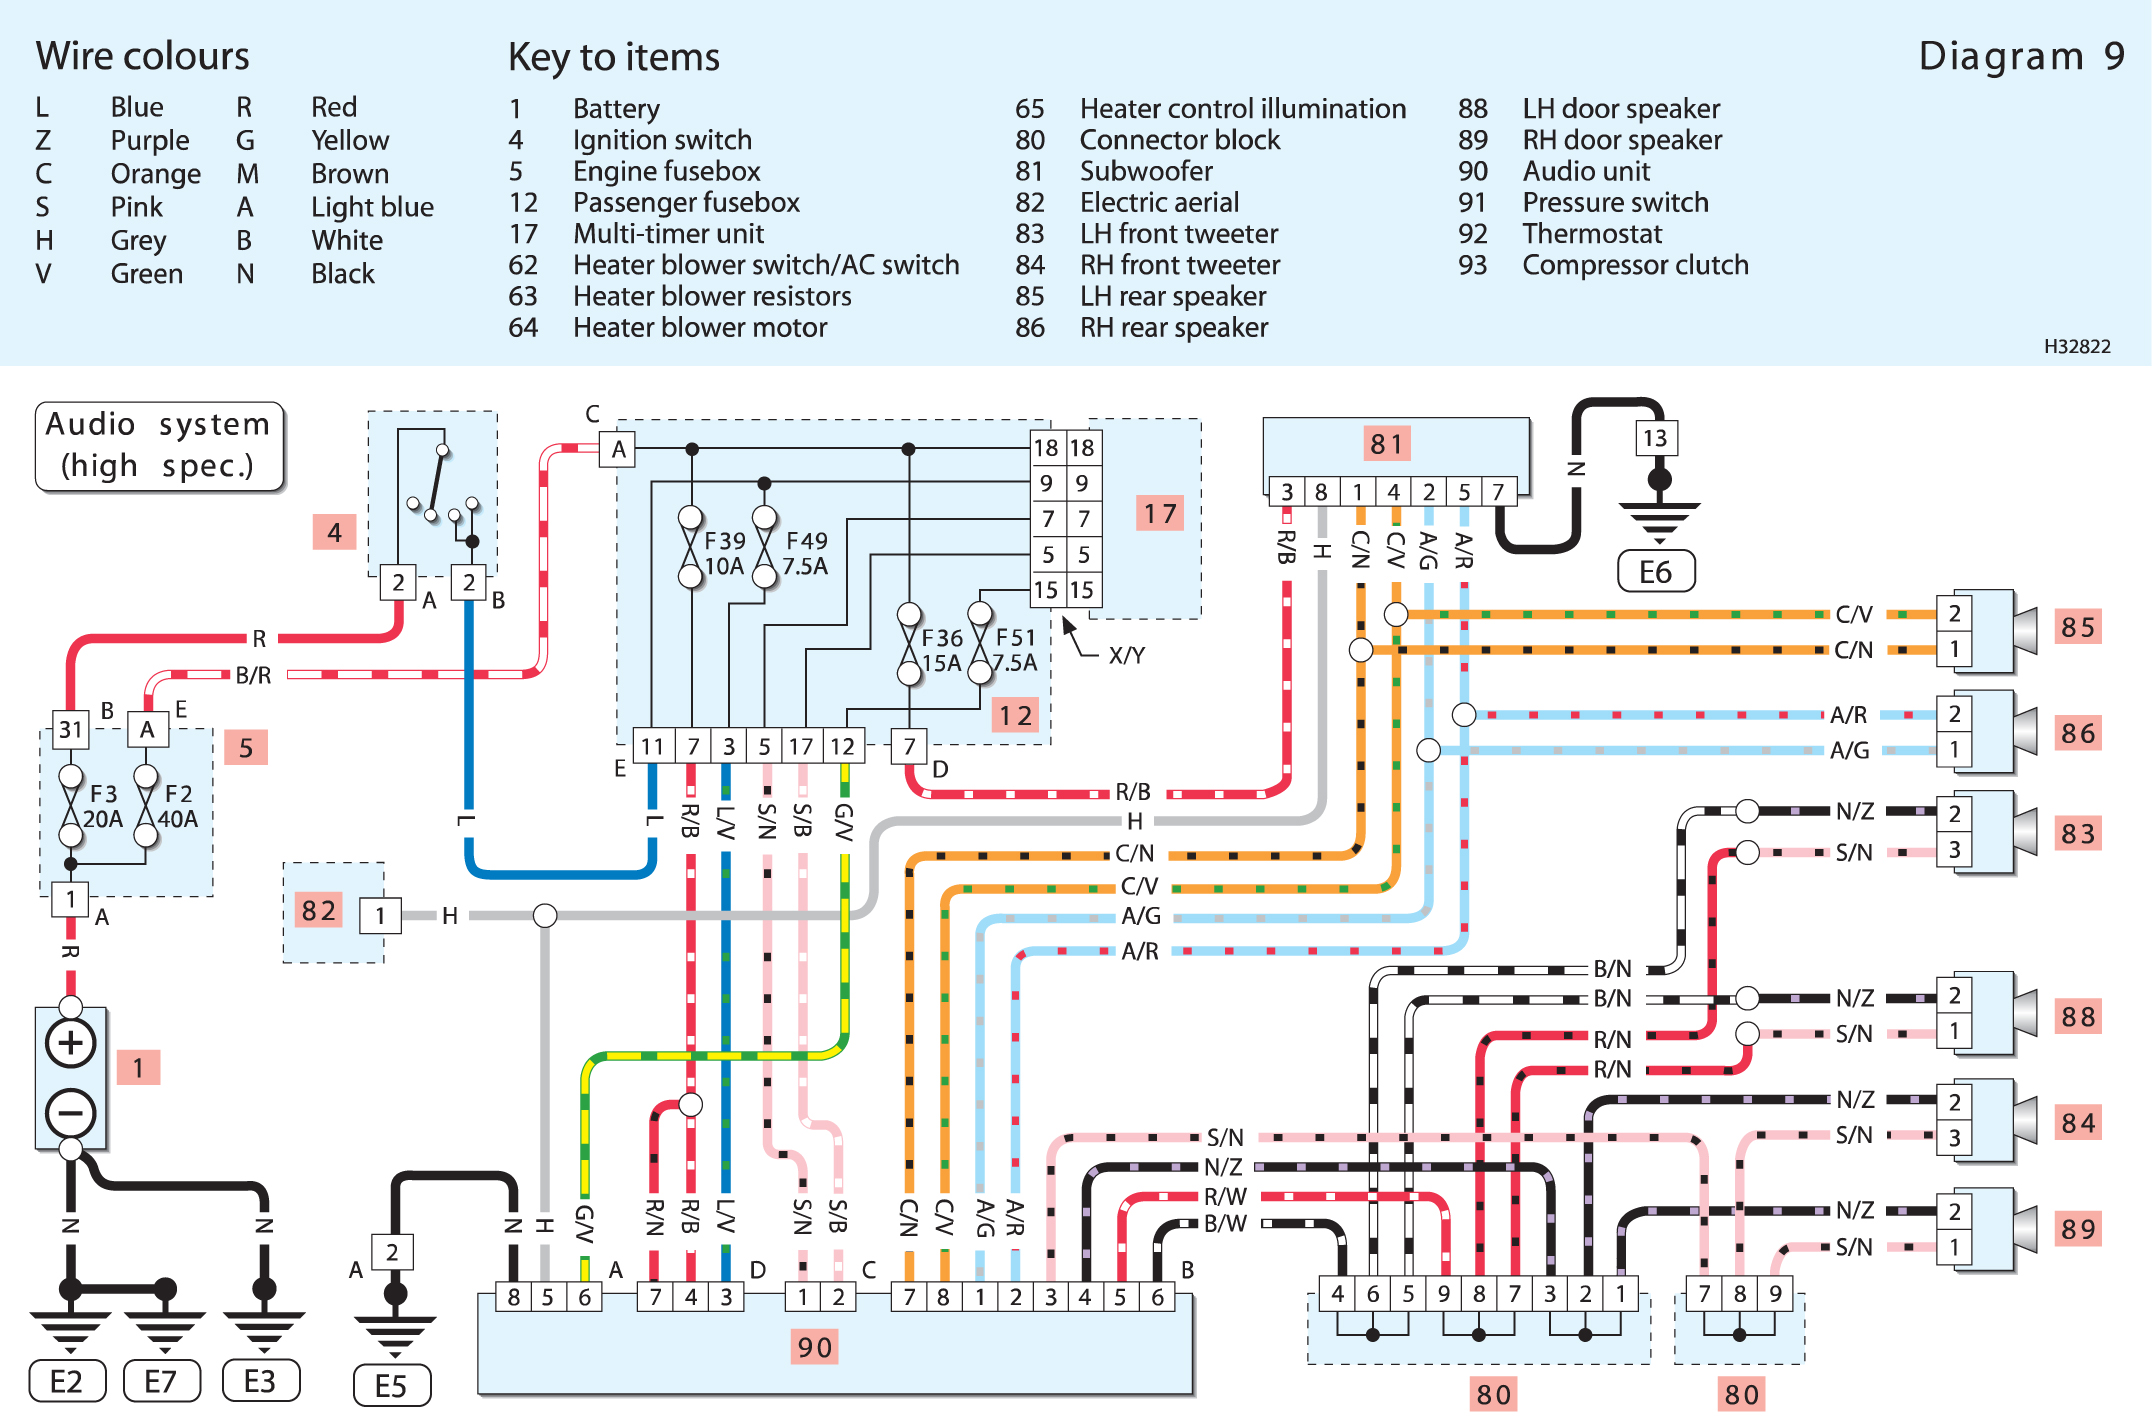 2013 fiat ducato fuse box diagram the fiat car. Black Bedroom Furniture Sets. Home Design Ideas